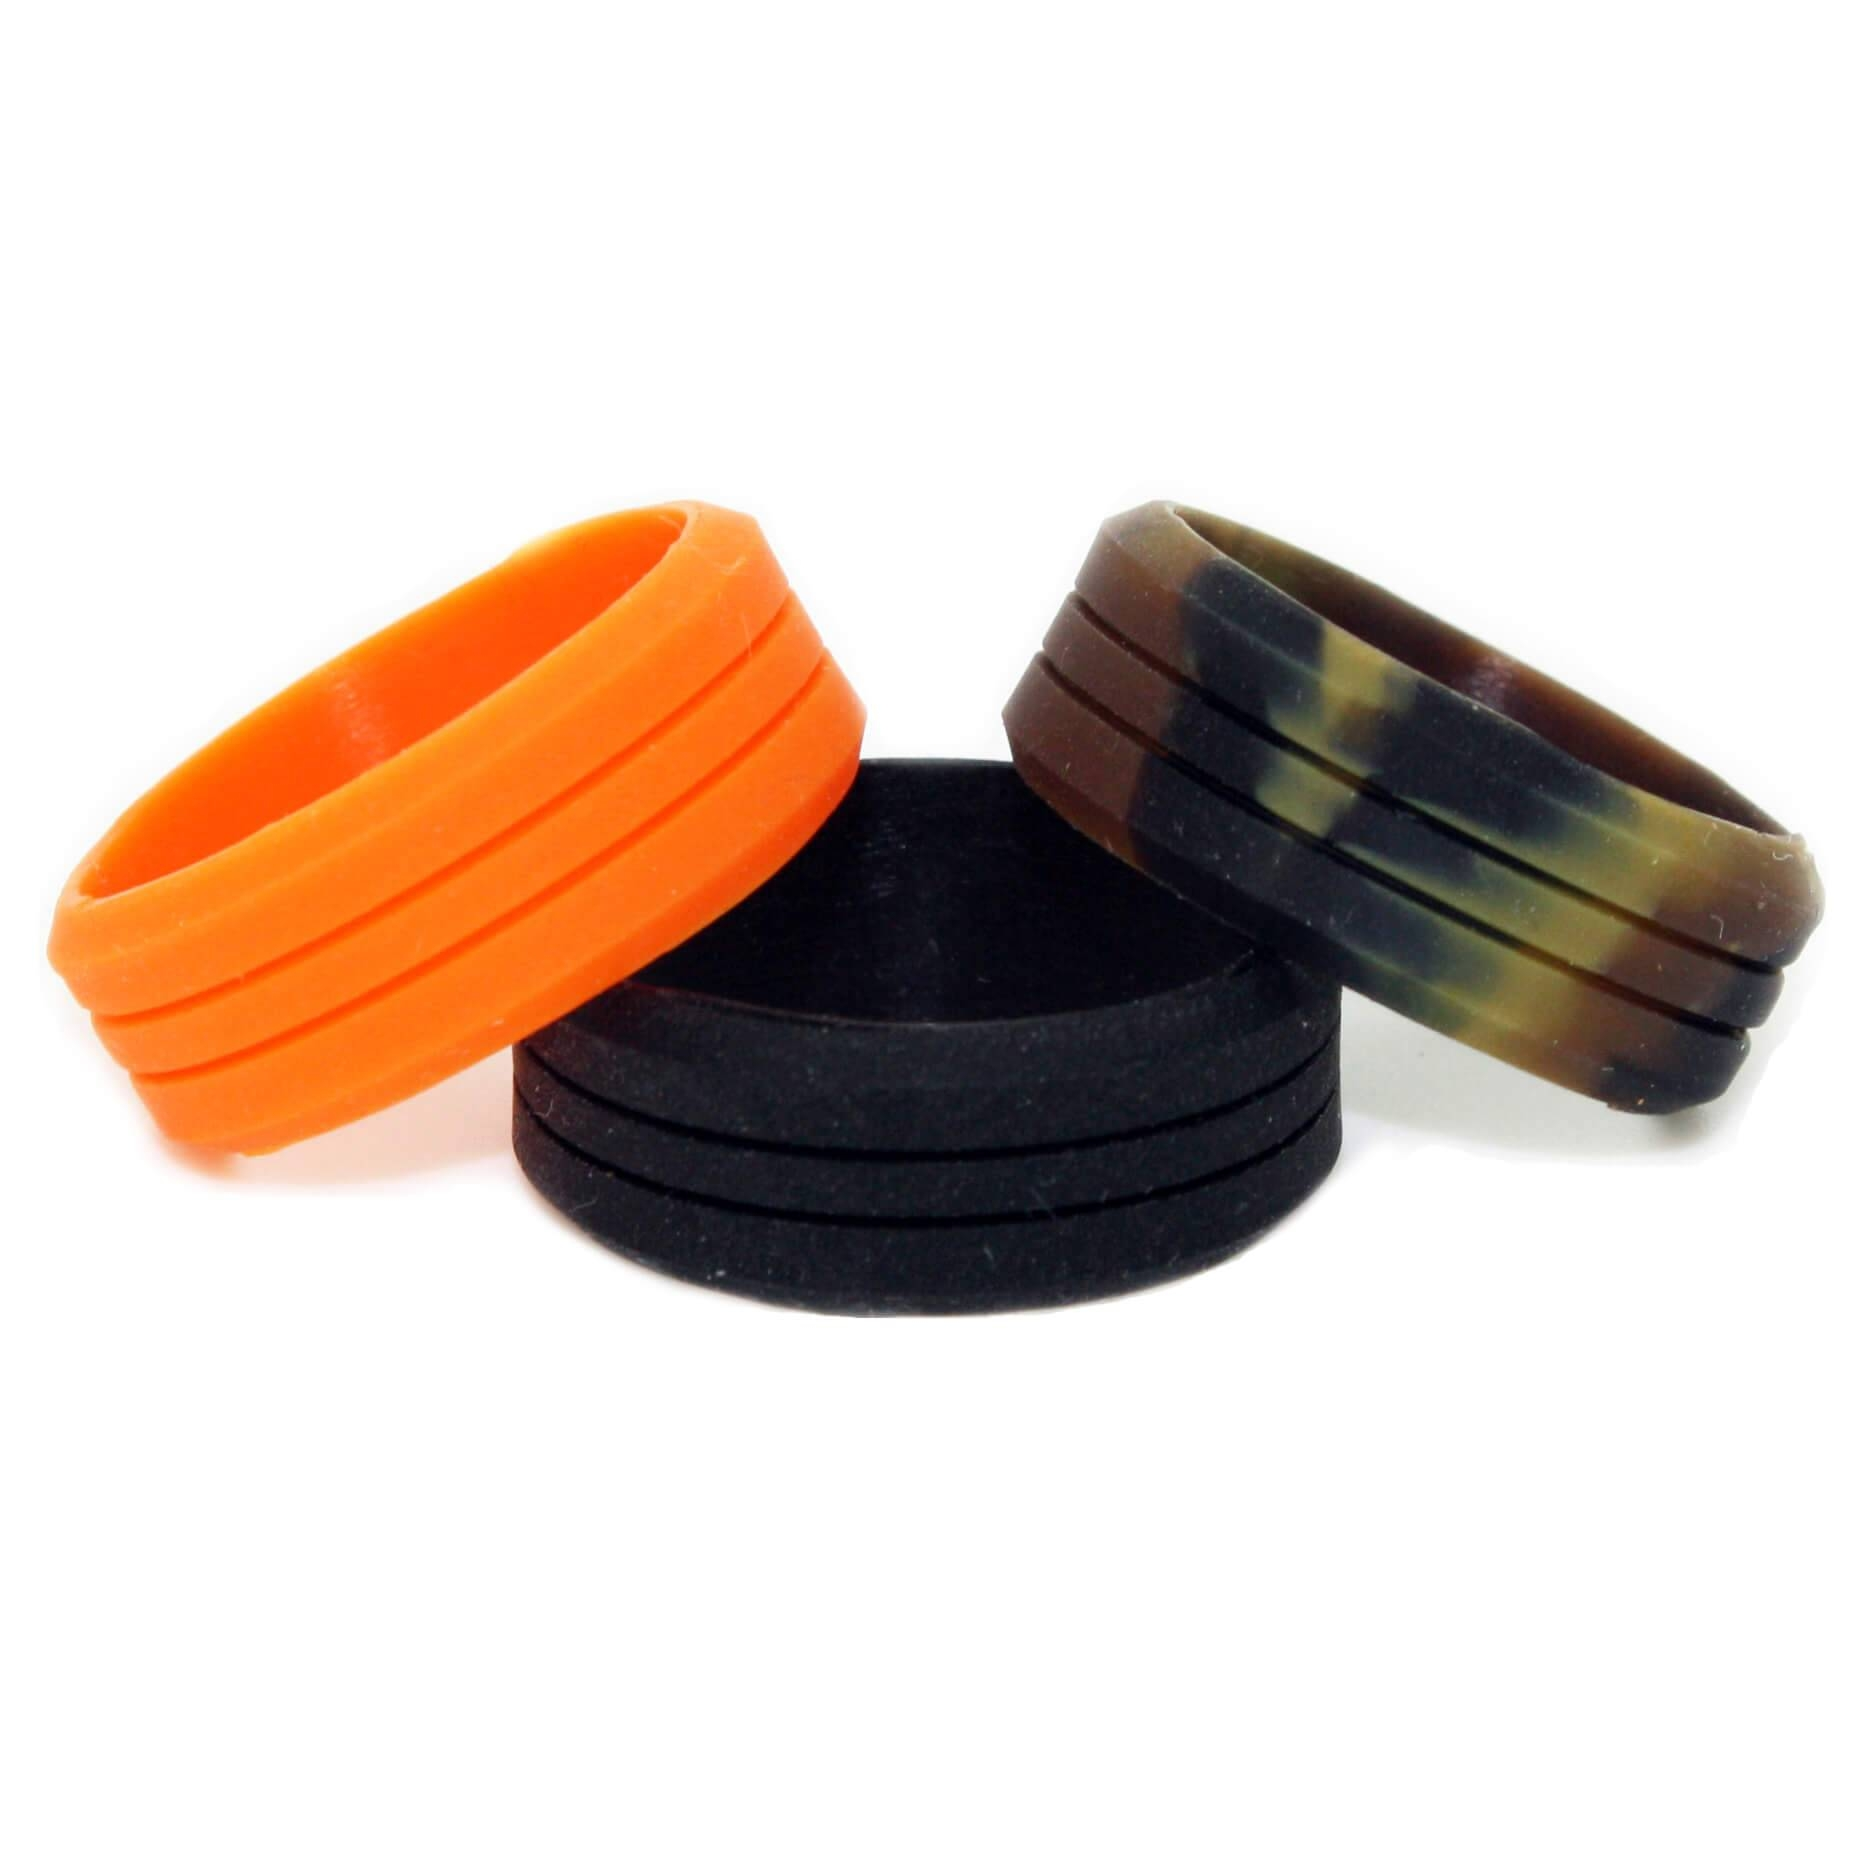 Anti Ring Avulsion Camo Silicone Wedding Ring – 3 Outdoor Ring Pack Intended For Silicone Wedding Bands (View 4 of 15)